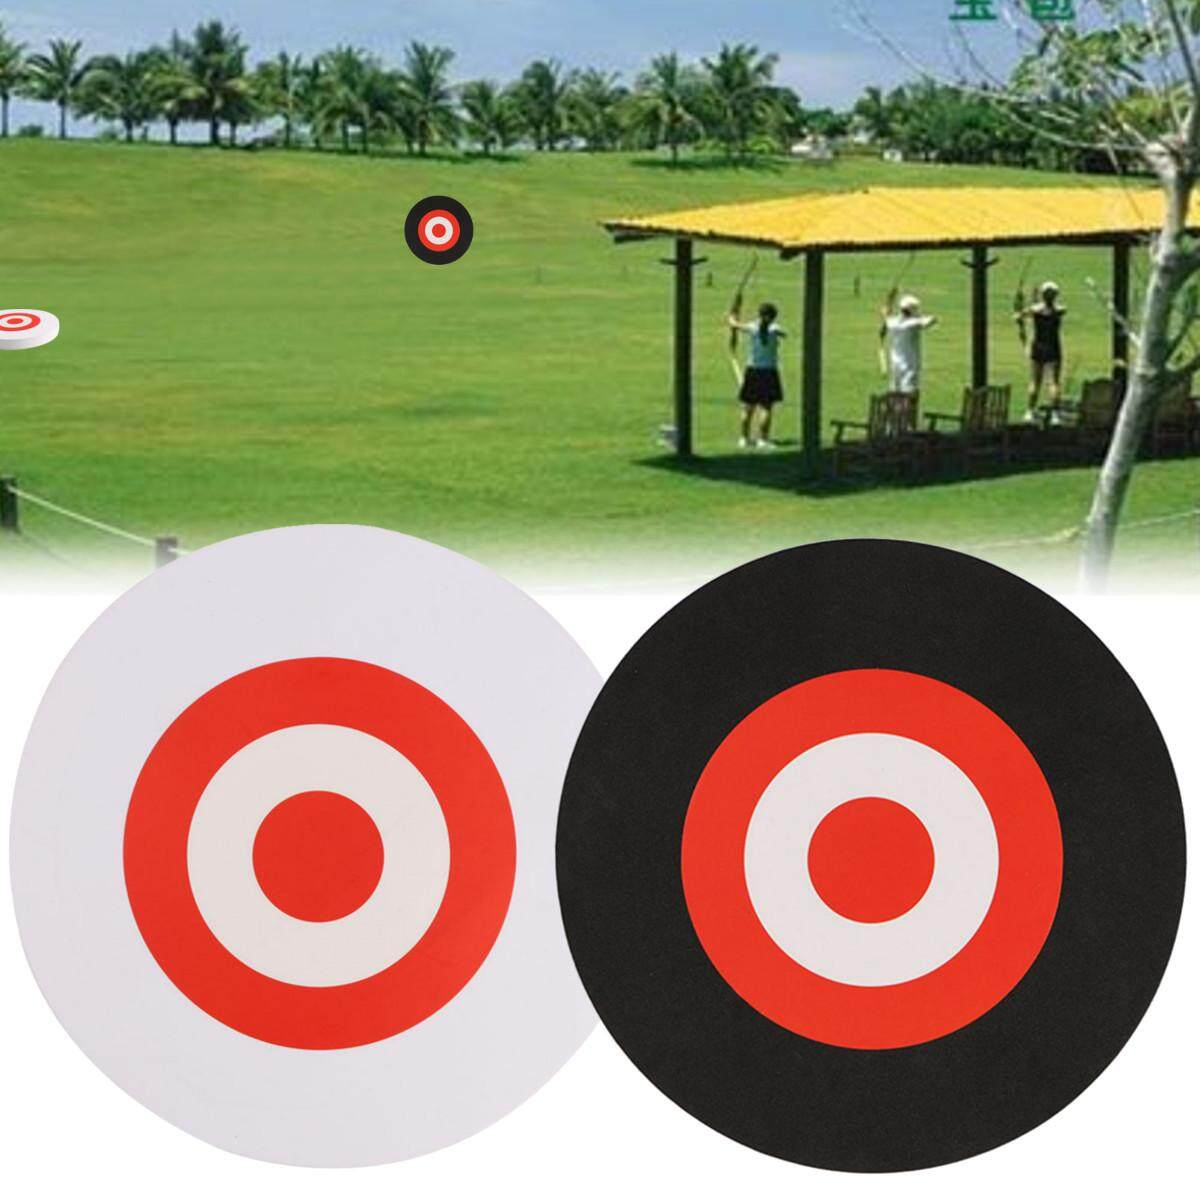 EVA Arrow Target Foam Board Self Healing Bow Moving Shooting Practice Hunting - intl image